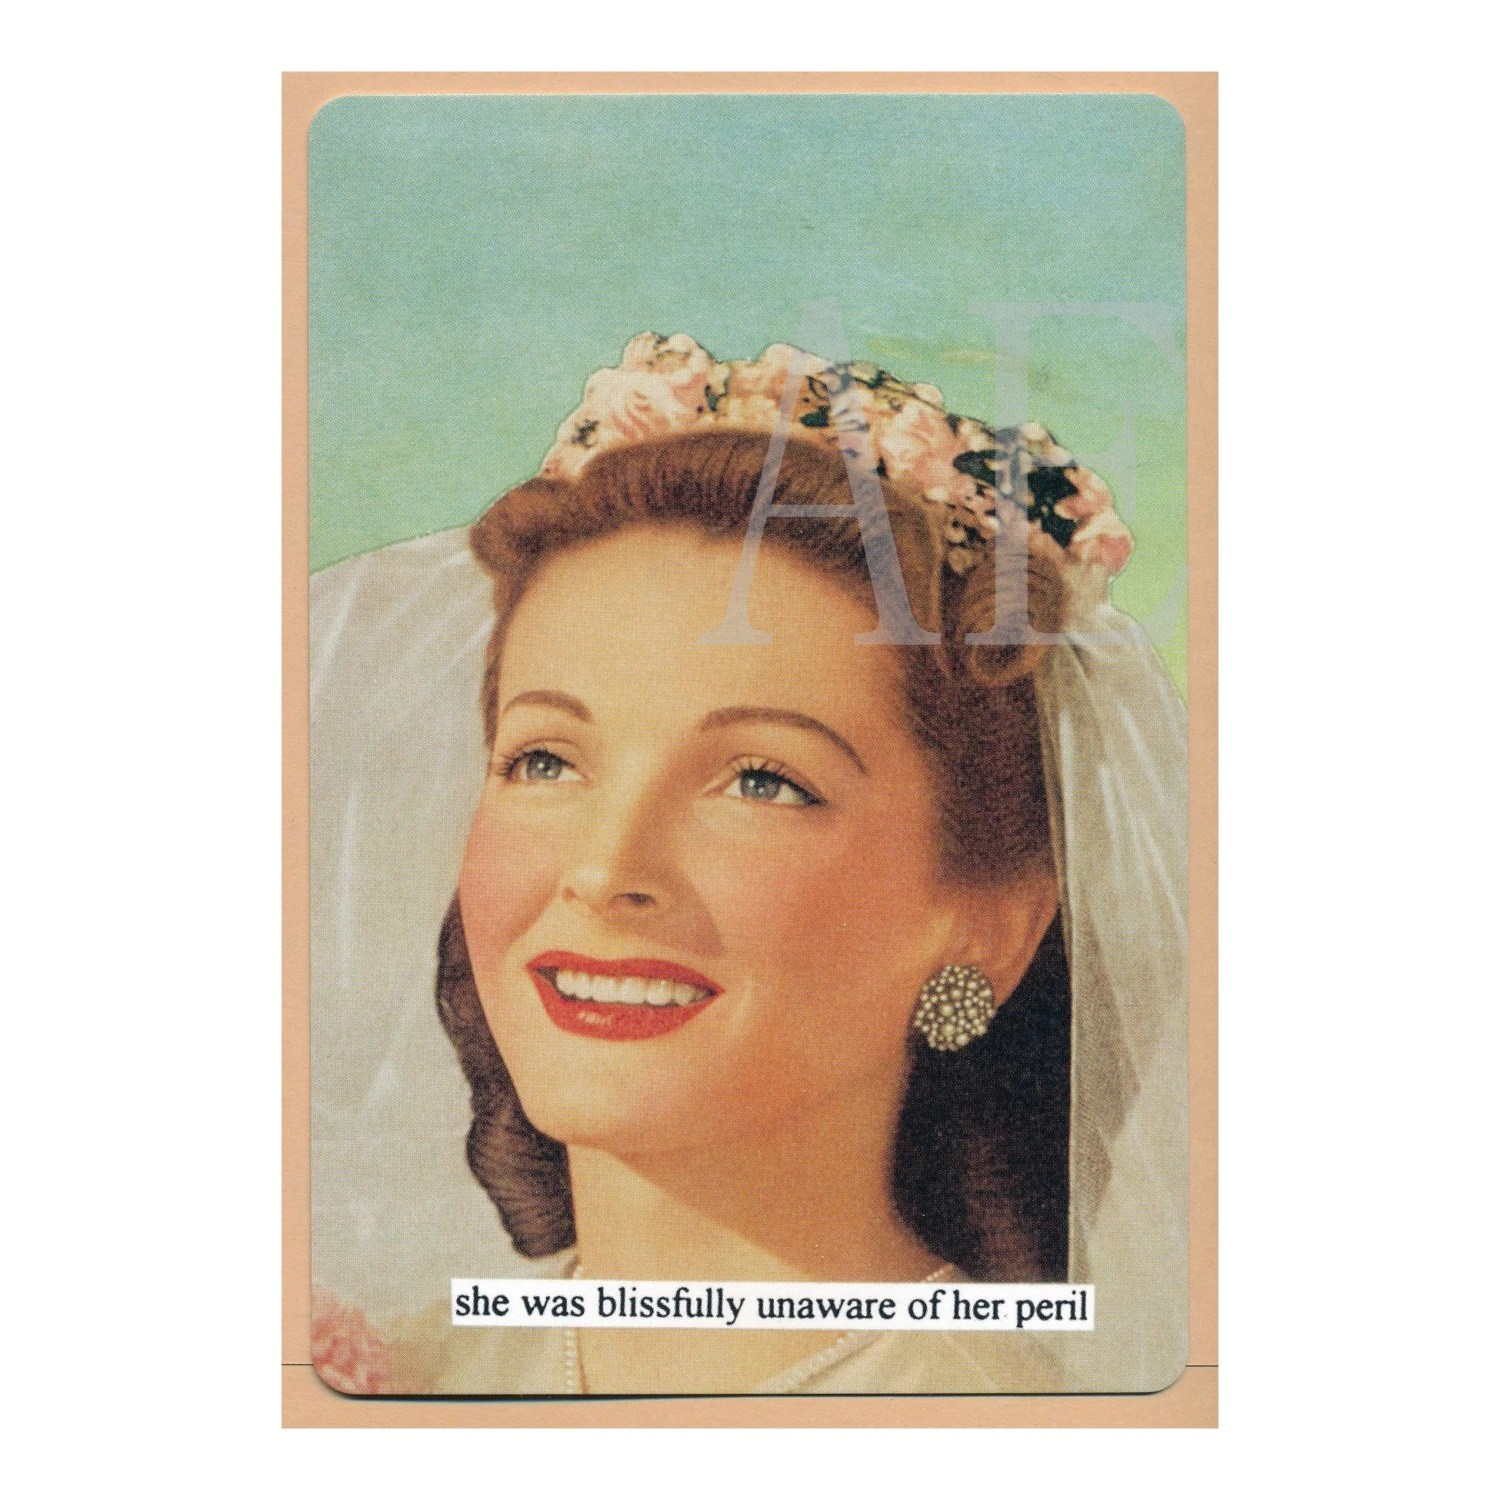 ATPC52 Anne Taintor Postcard Magnet She Was Blissfully